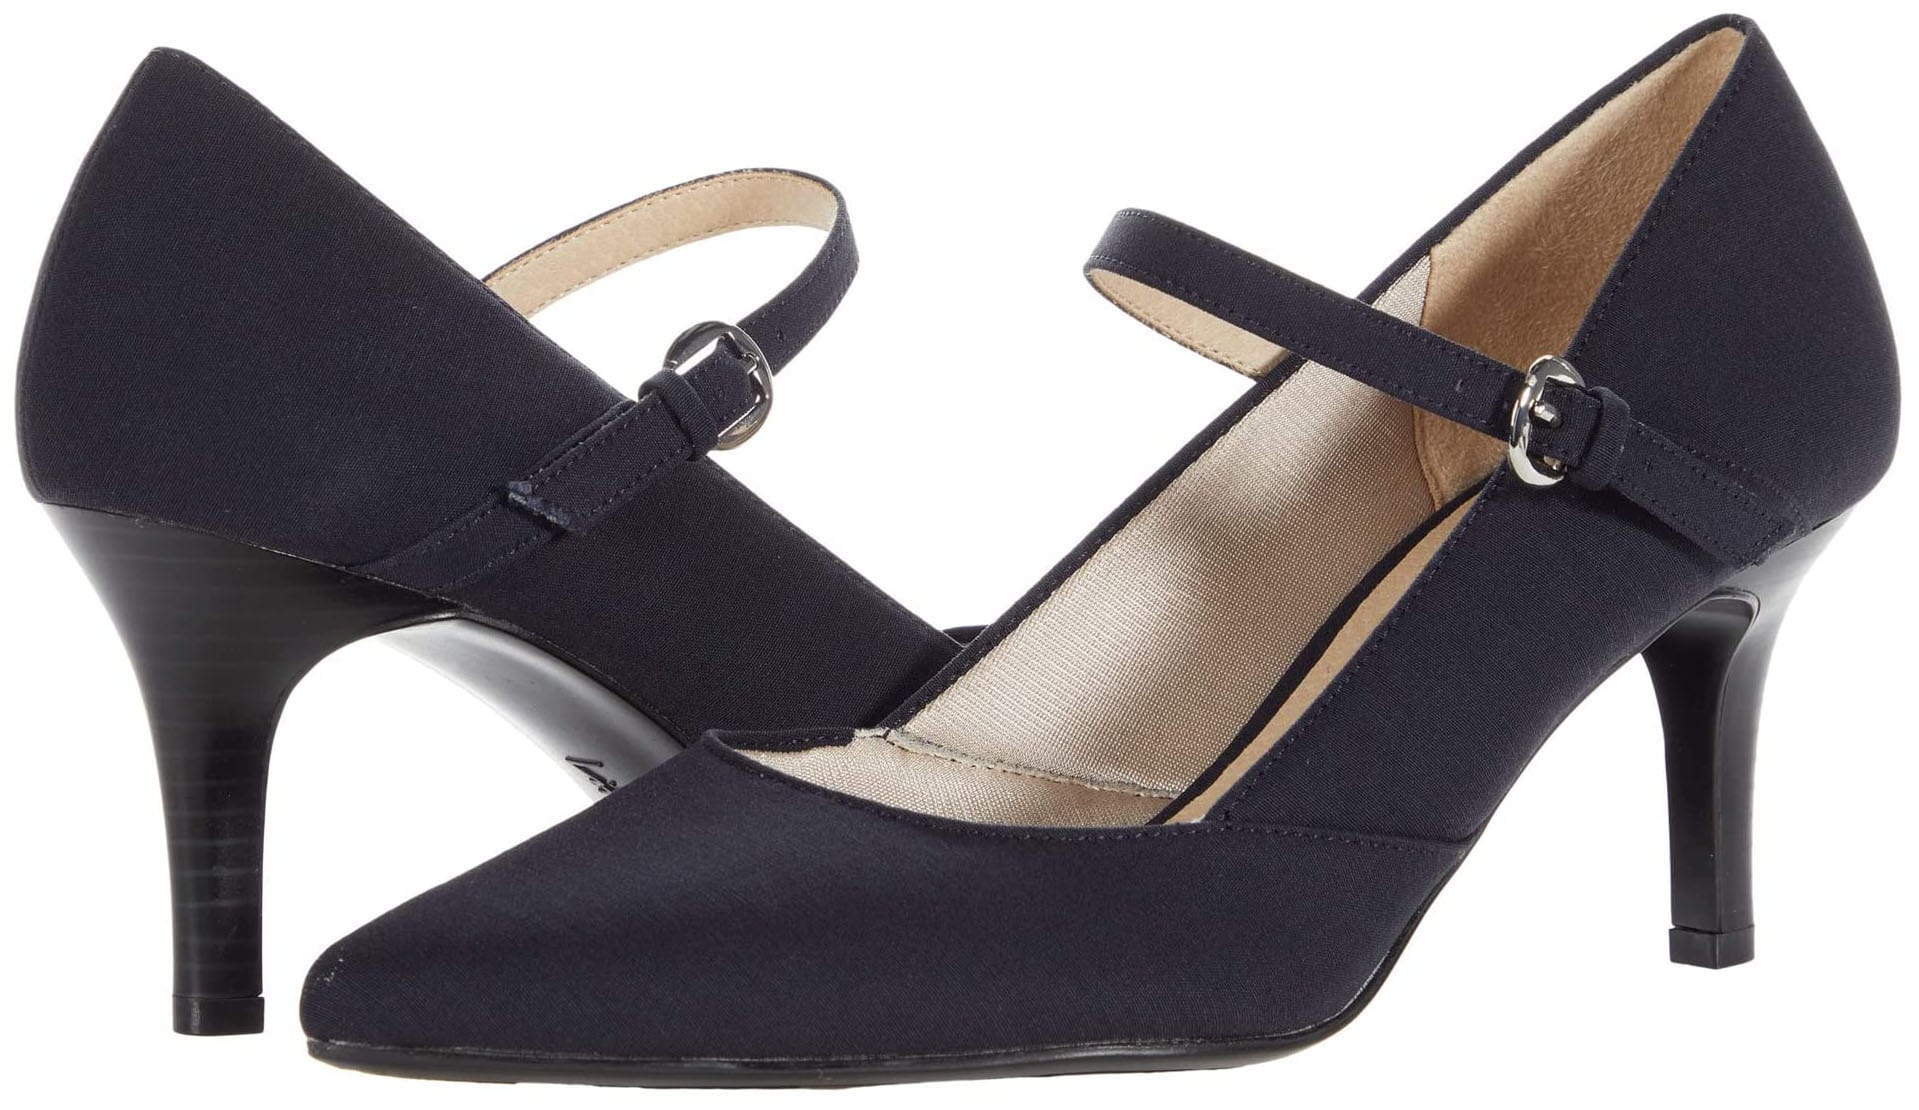 Elevate your look with lasting comfort with the LifeStride Sandrine Mary Janes